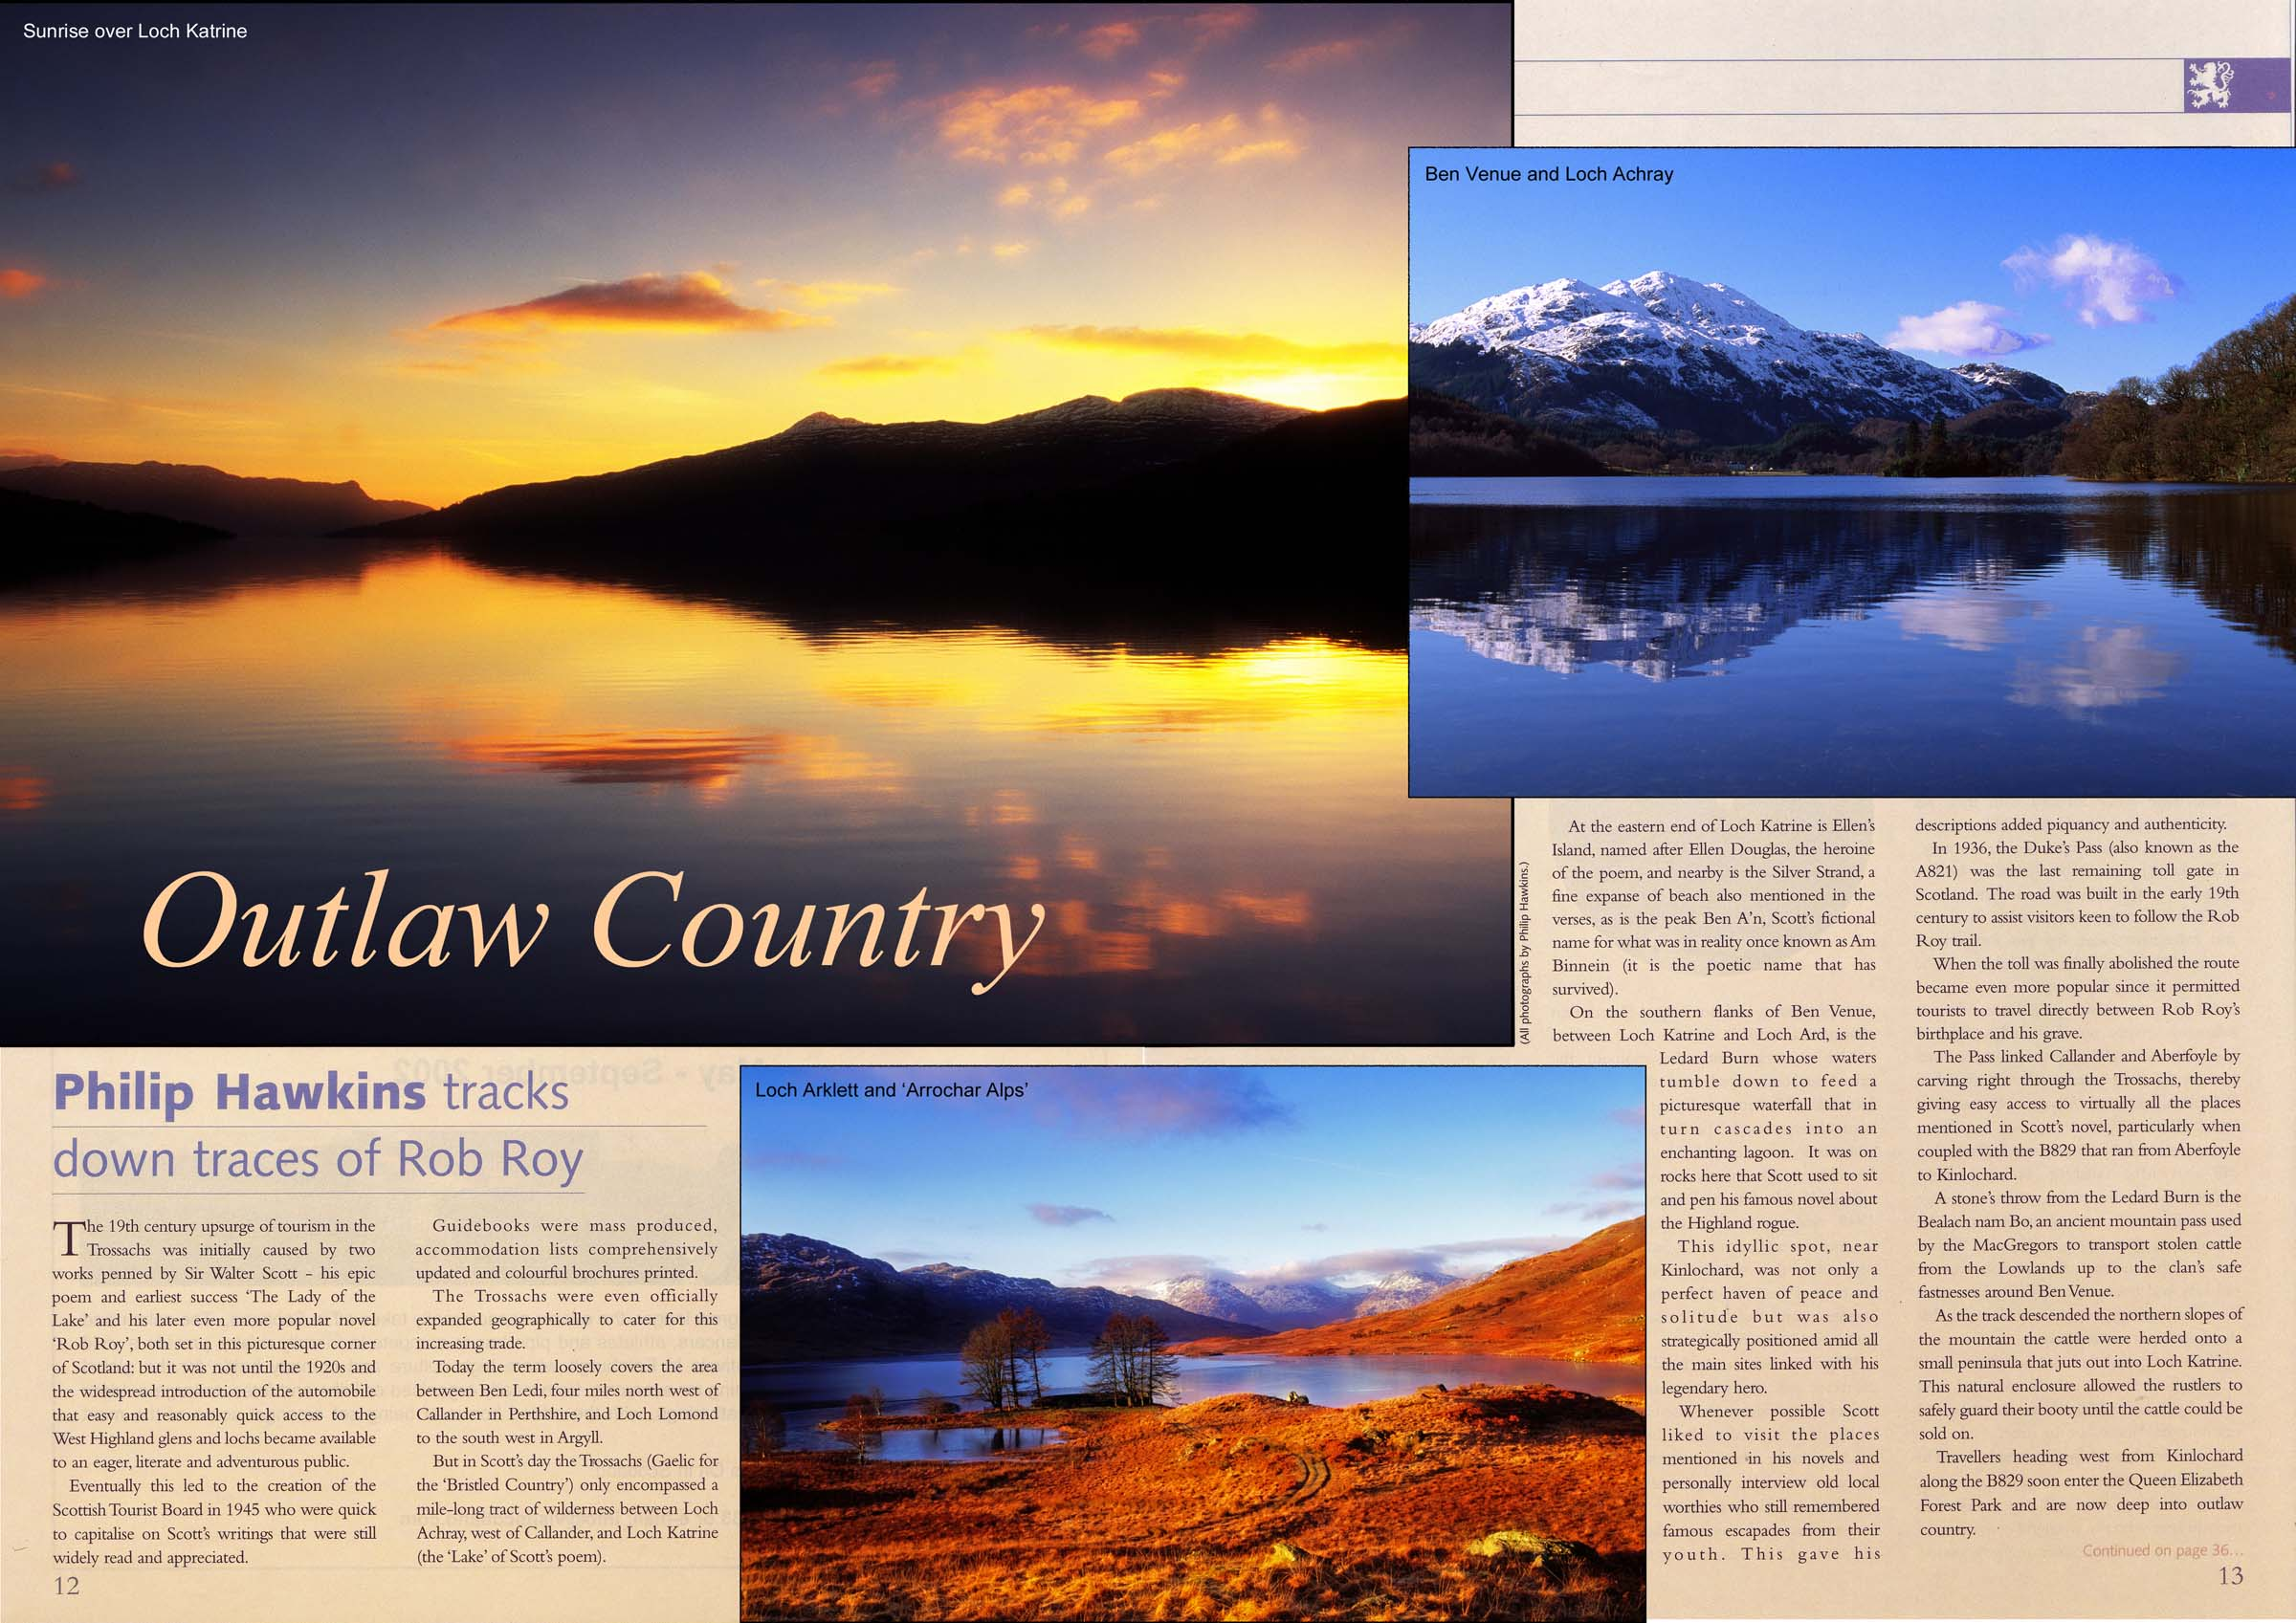 Magazine article, writing and images by Philip Hawkins